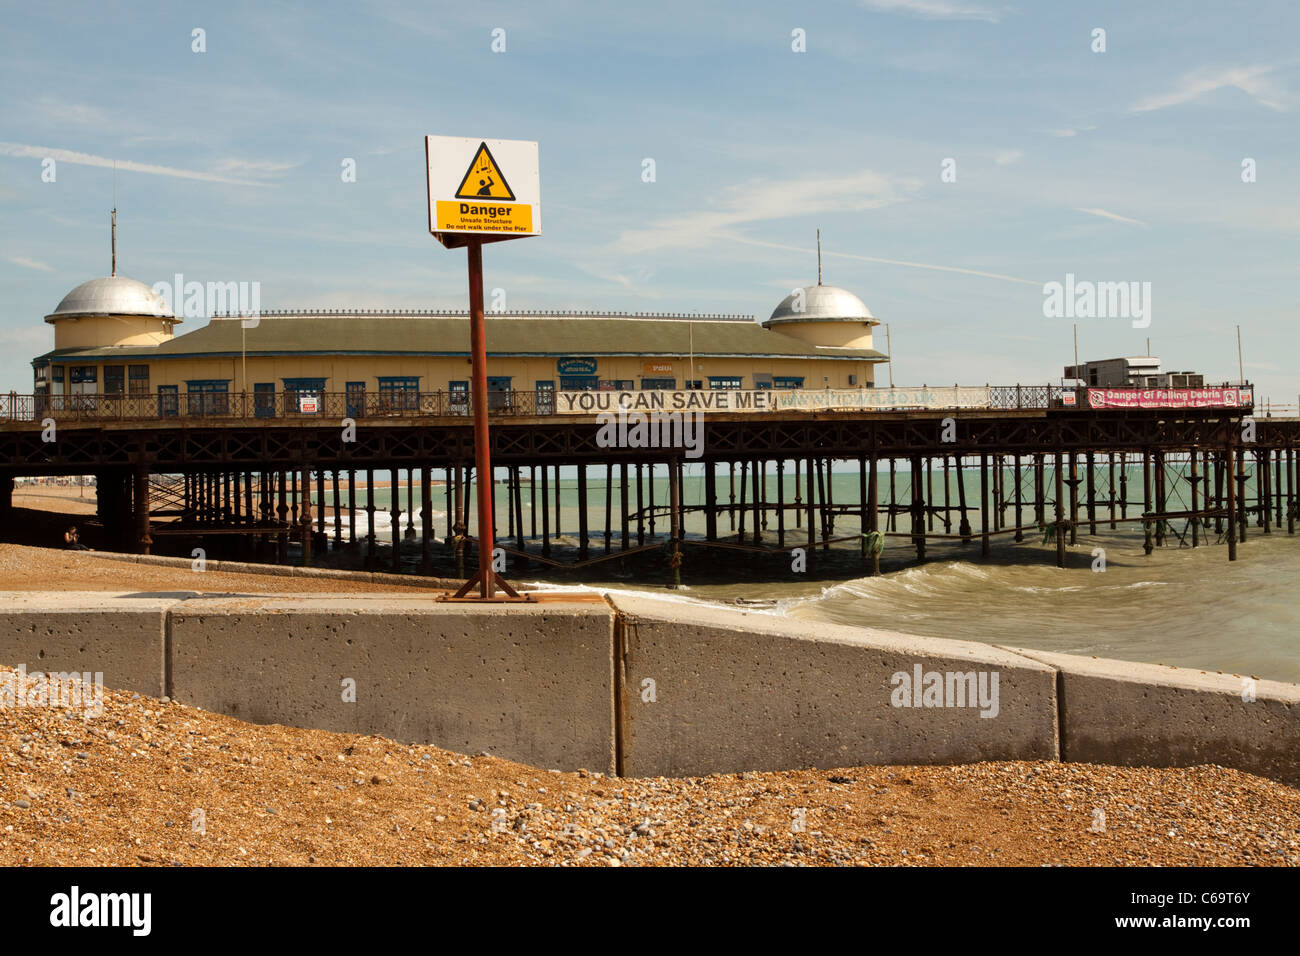 Hasting pier and beach/seafront, East Sussex, England, UK  The pier is now derelict after arson in 2010 - Stock Image